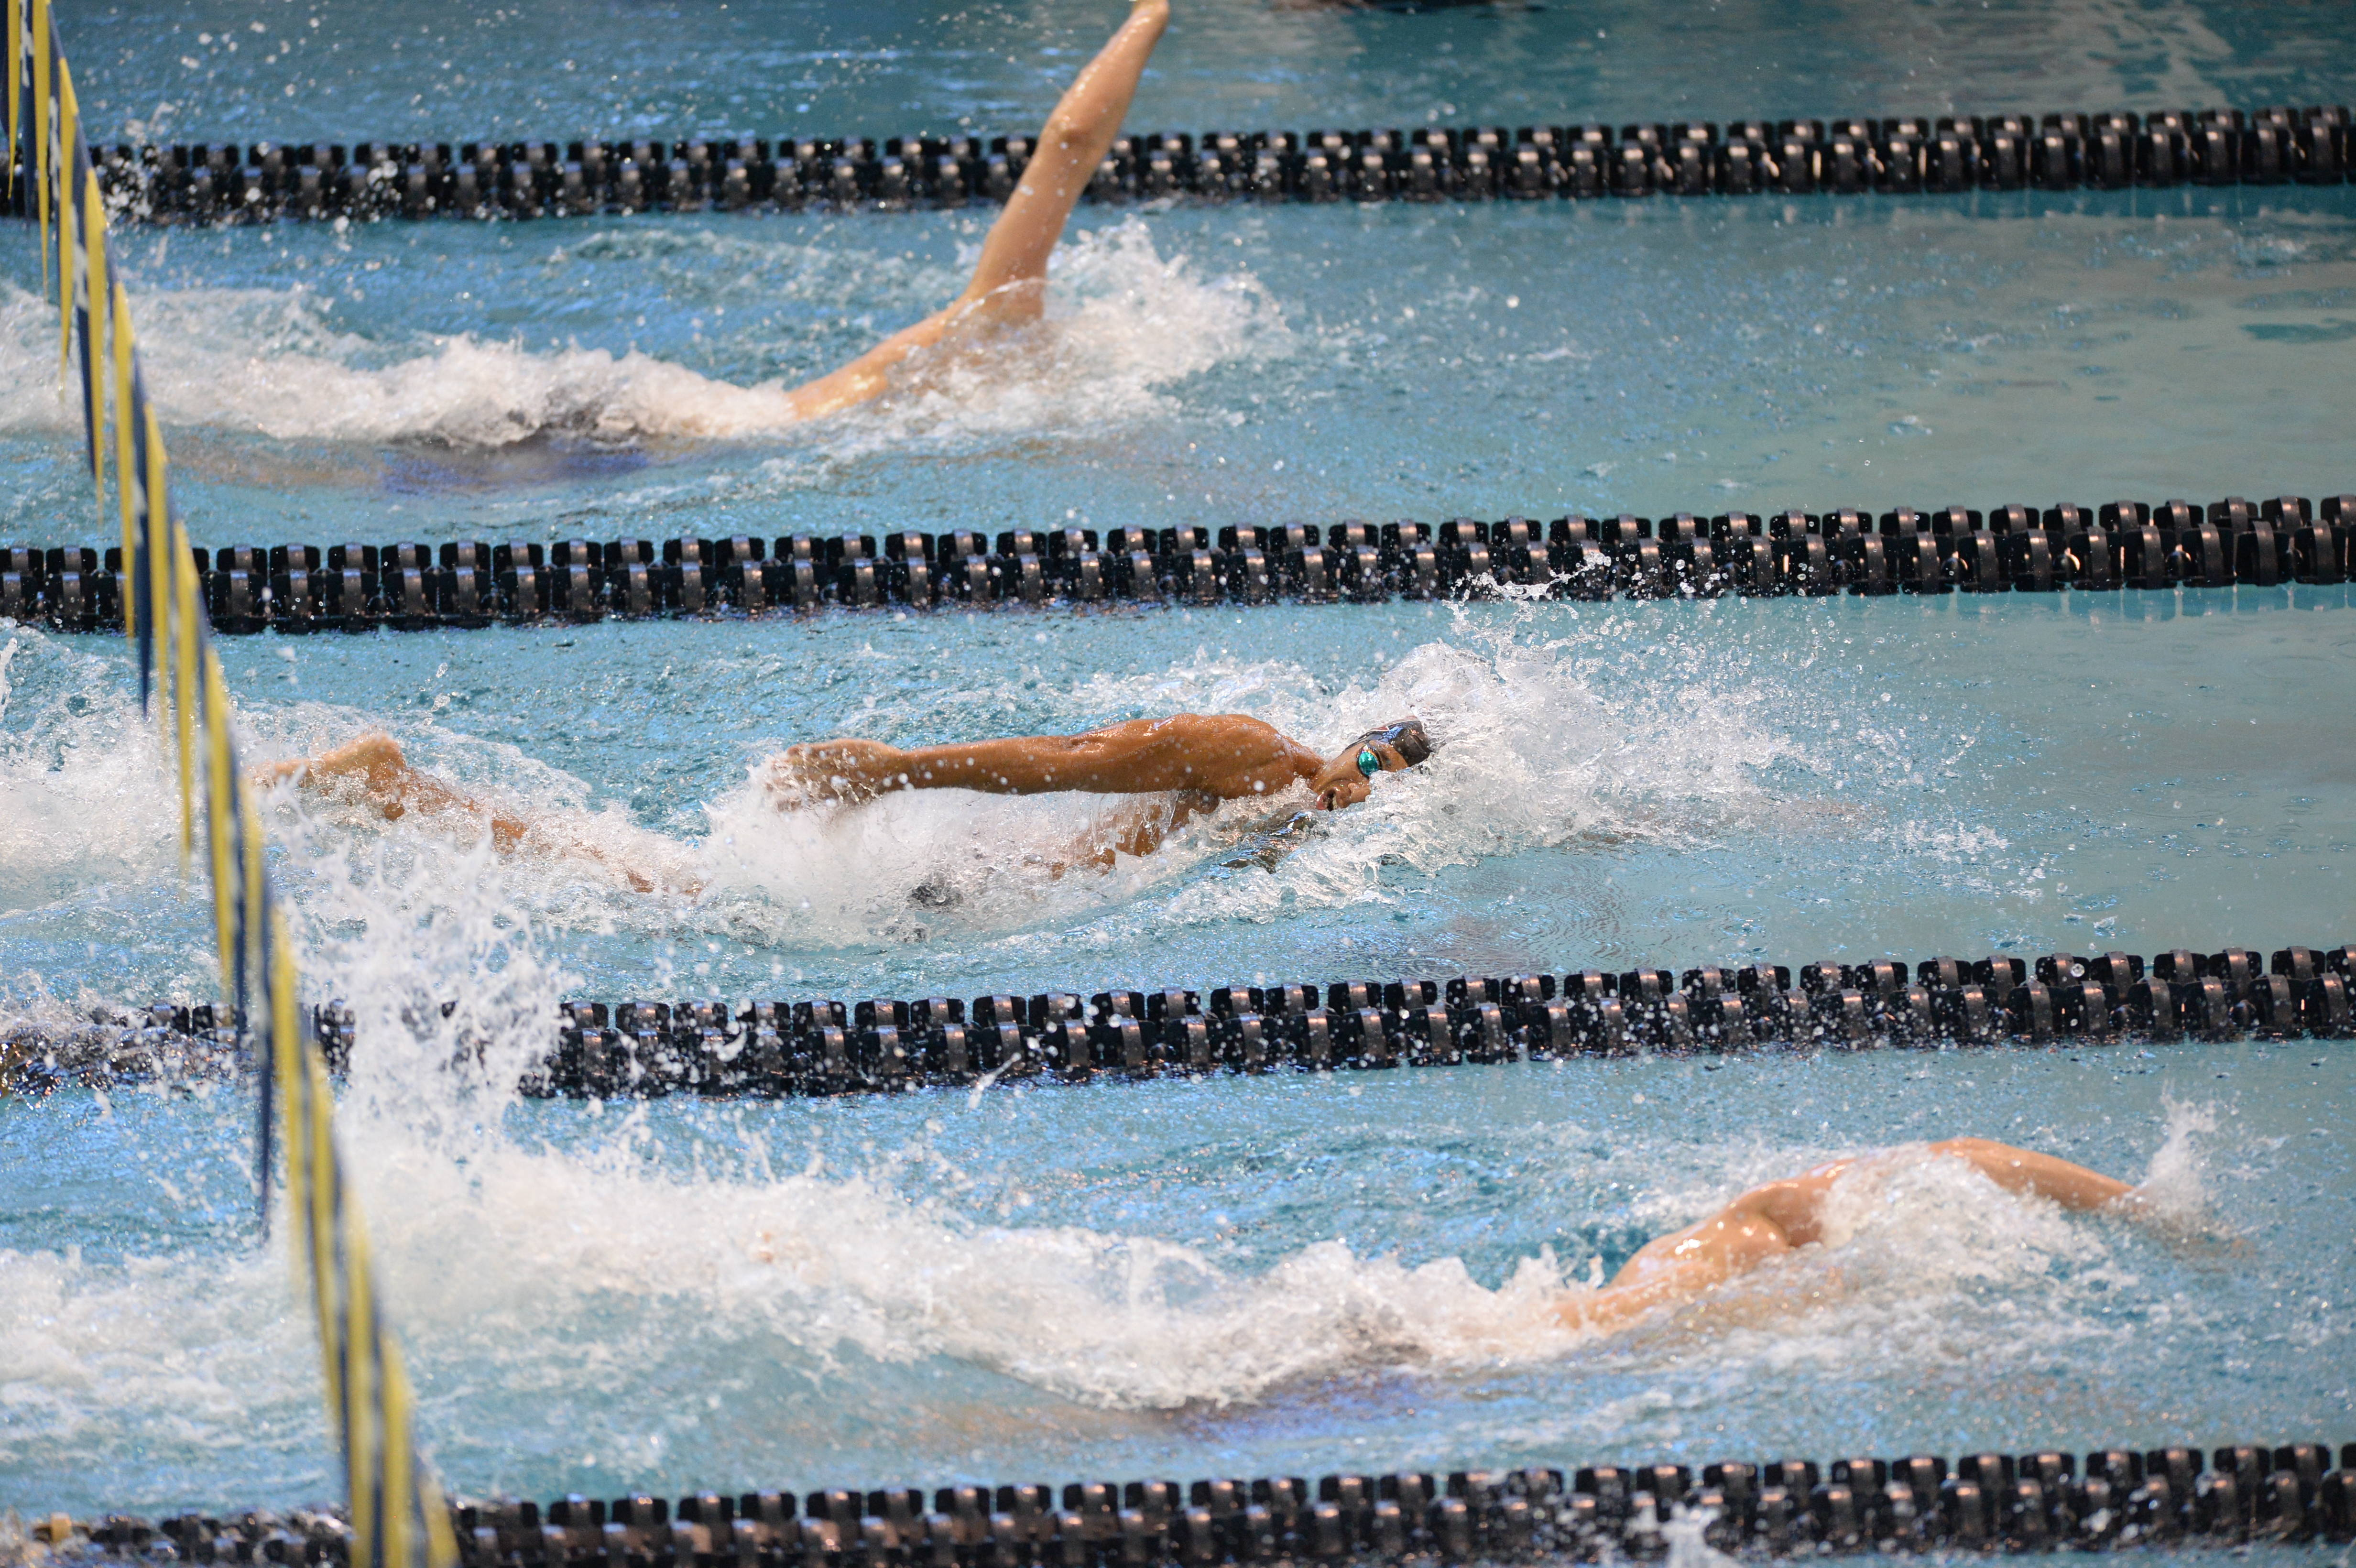 Jemal LeGrand in the 200 free - Mitch White